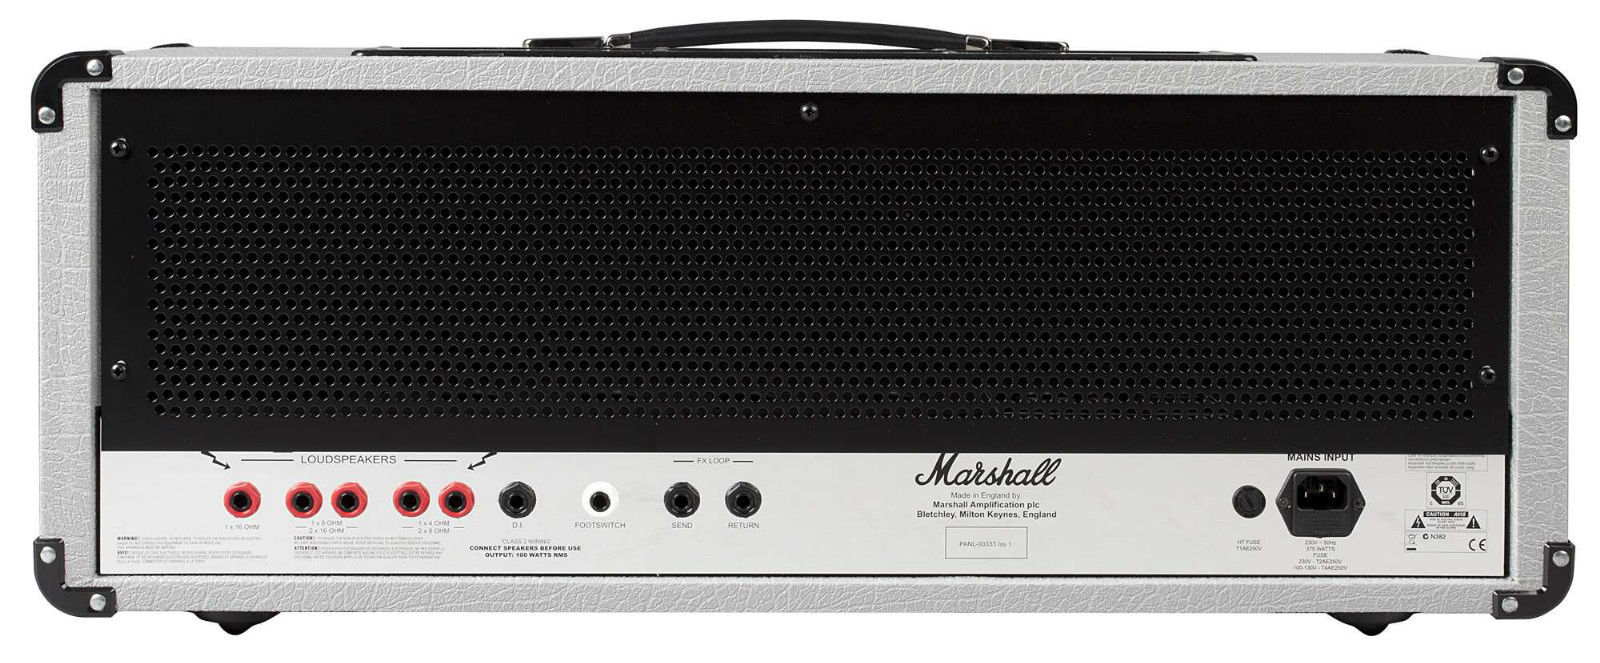 Marshall 2555X Silver Jubilee Amp Head, Guitar Amplifier